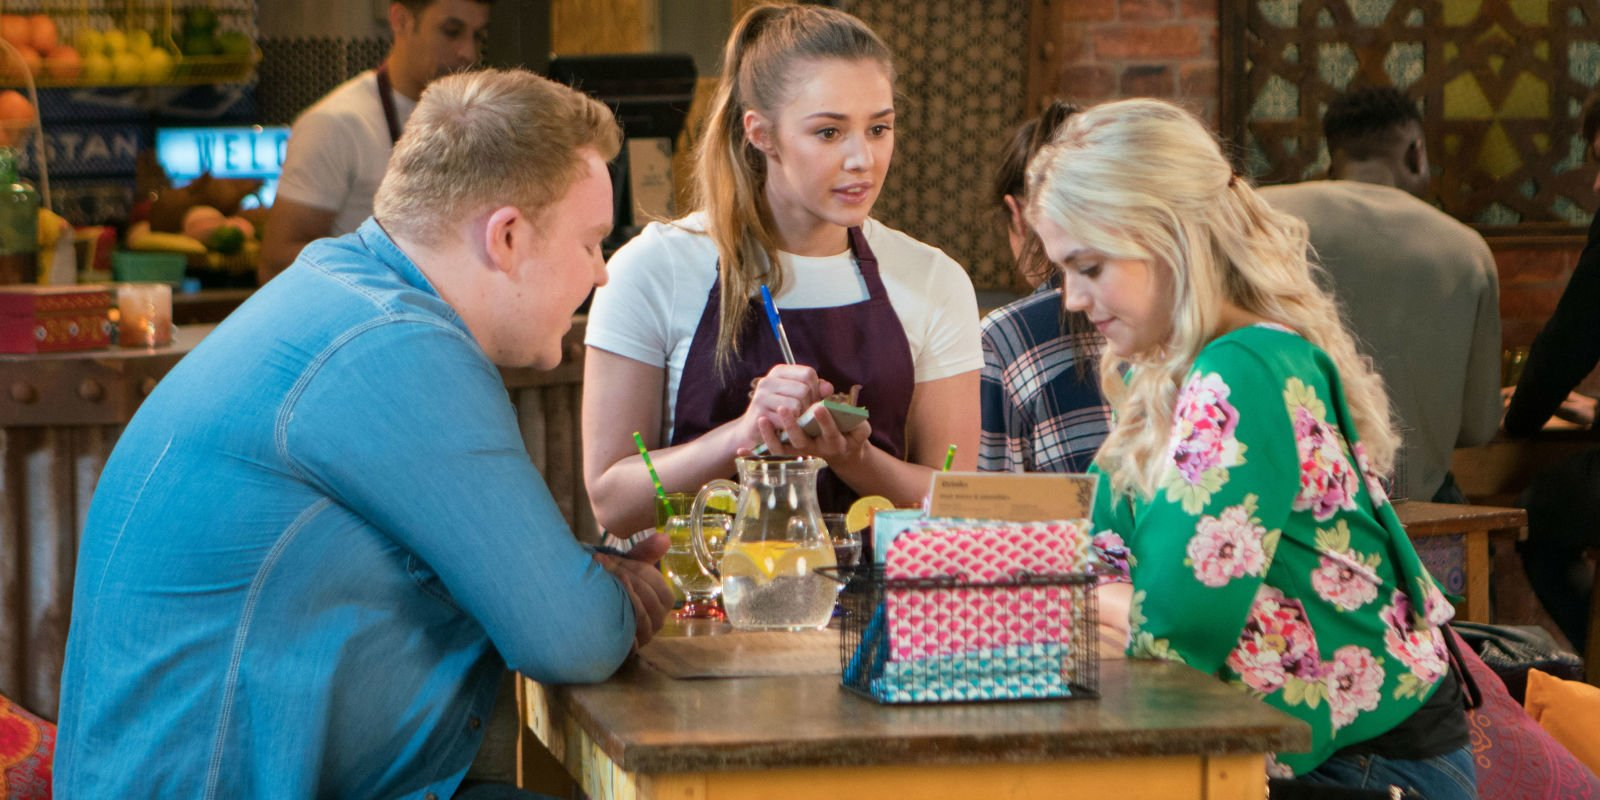 Coronation Street newcomer Kayla hides her true identity as she meets Bethany and Craig tonight